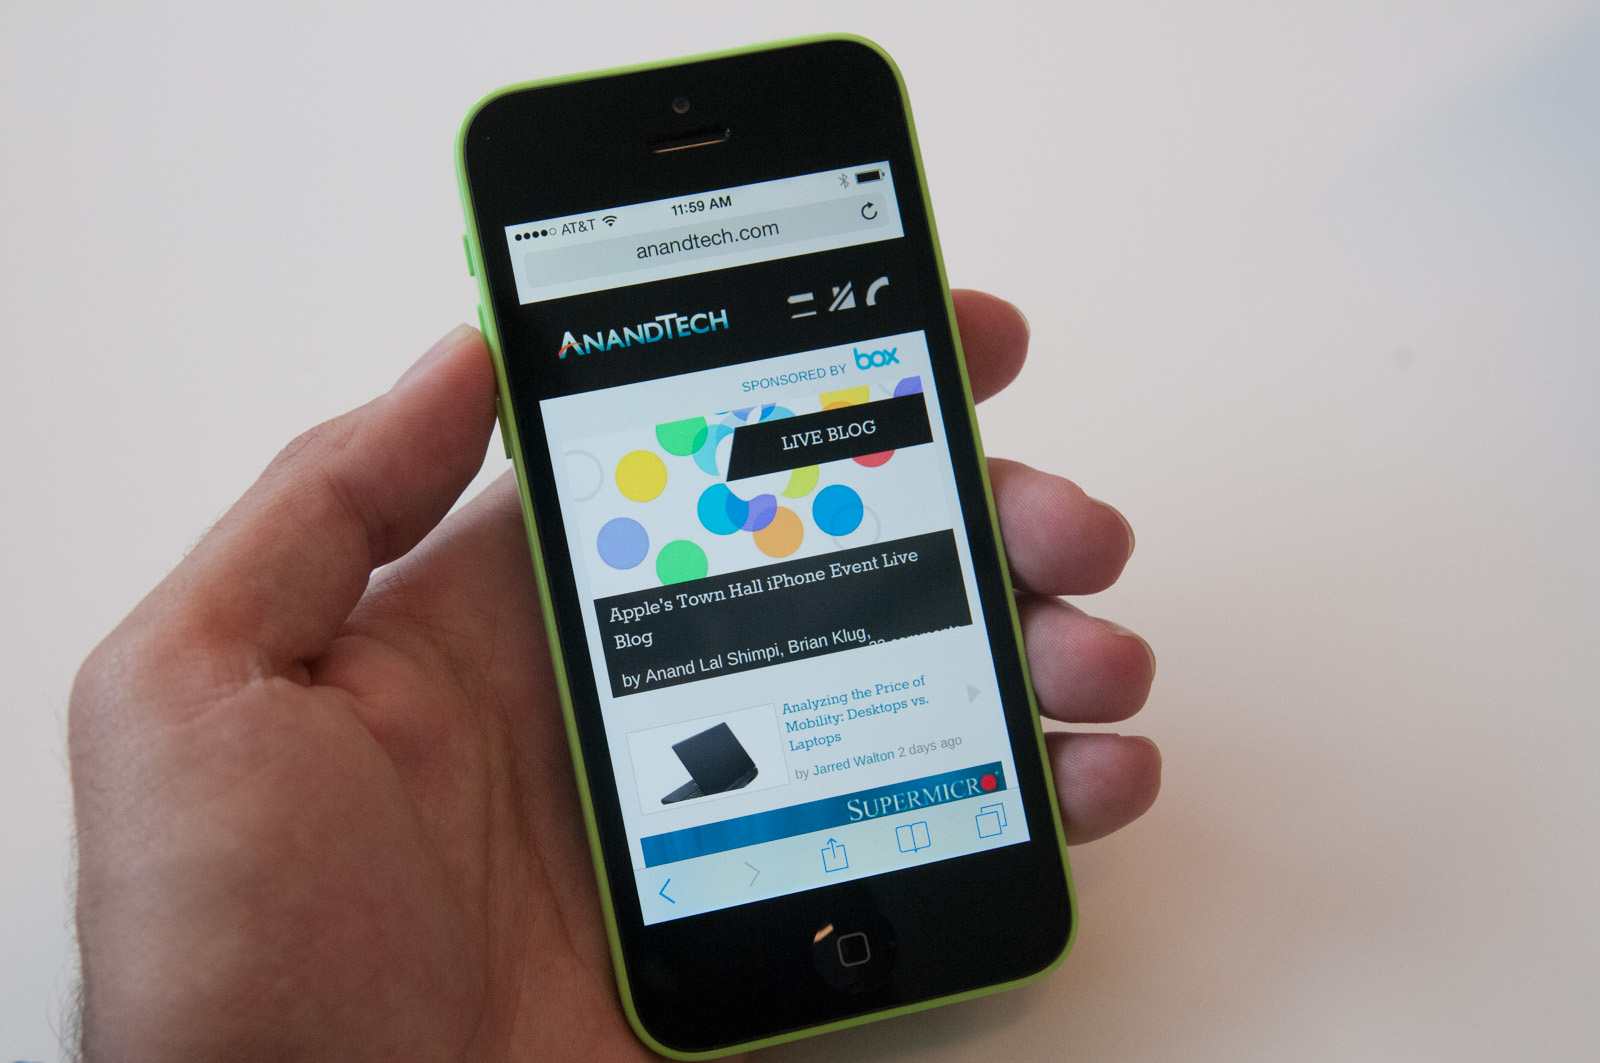 Hands on with the new iPhone 5C